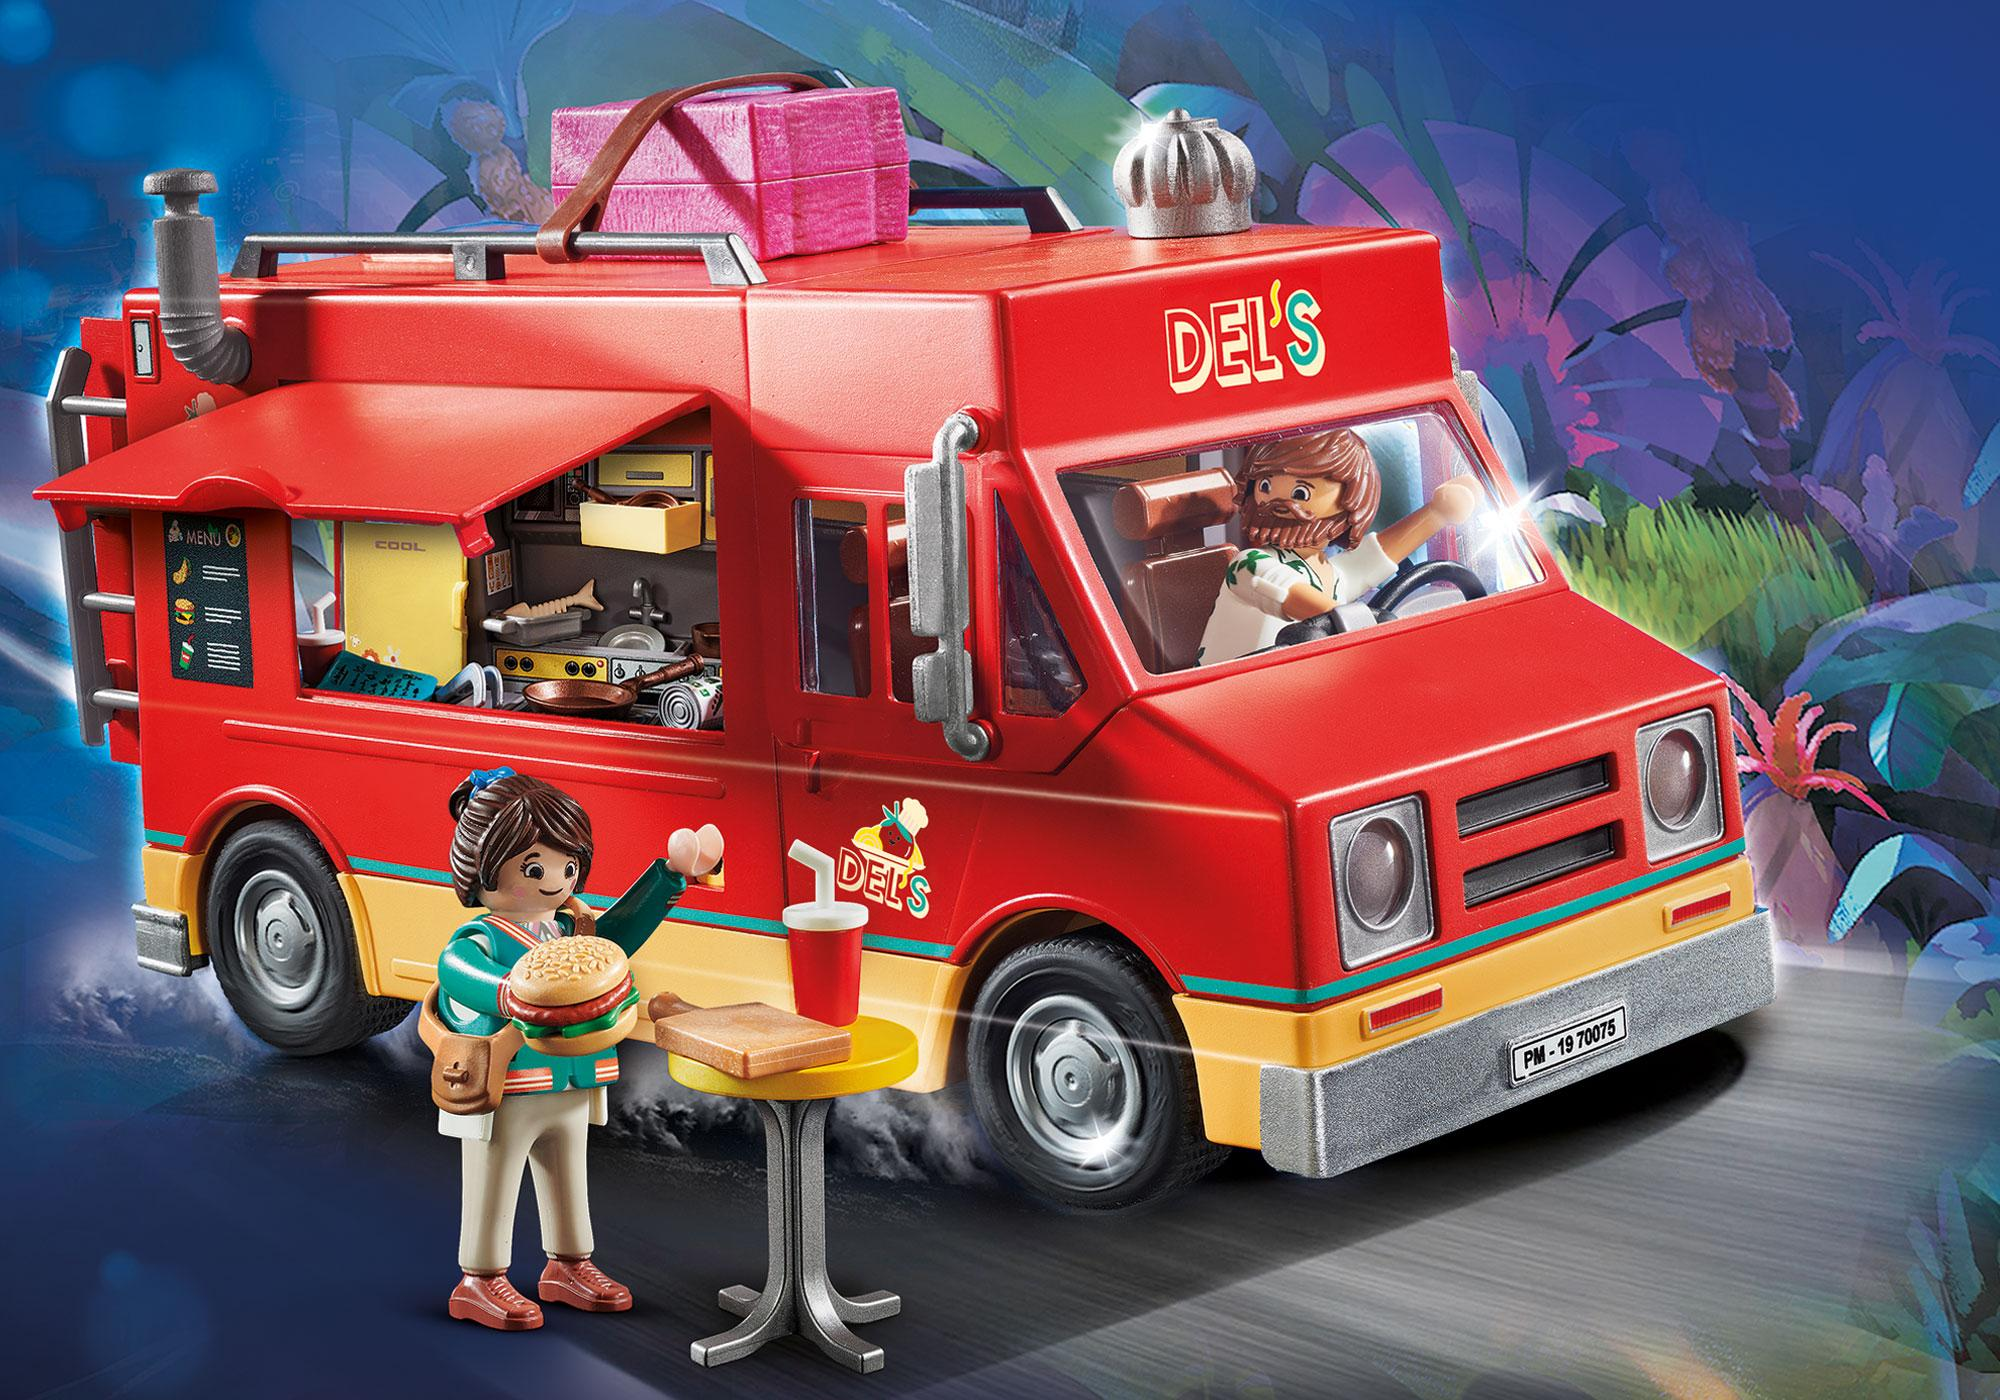 http://media.playmobil.com/i/playmobil/70075_product_detail/PLAYMOBIL: THE MOVIE Food Truck de Del